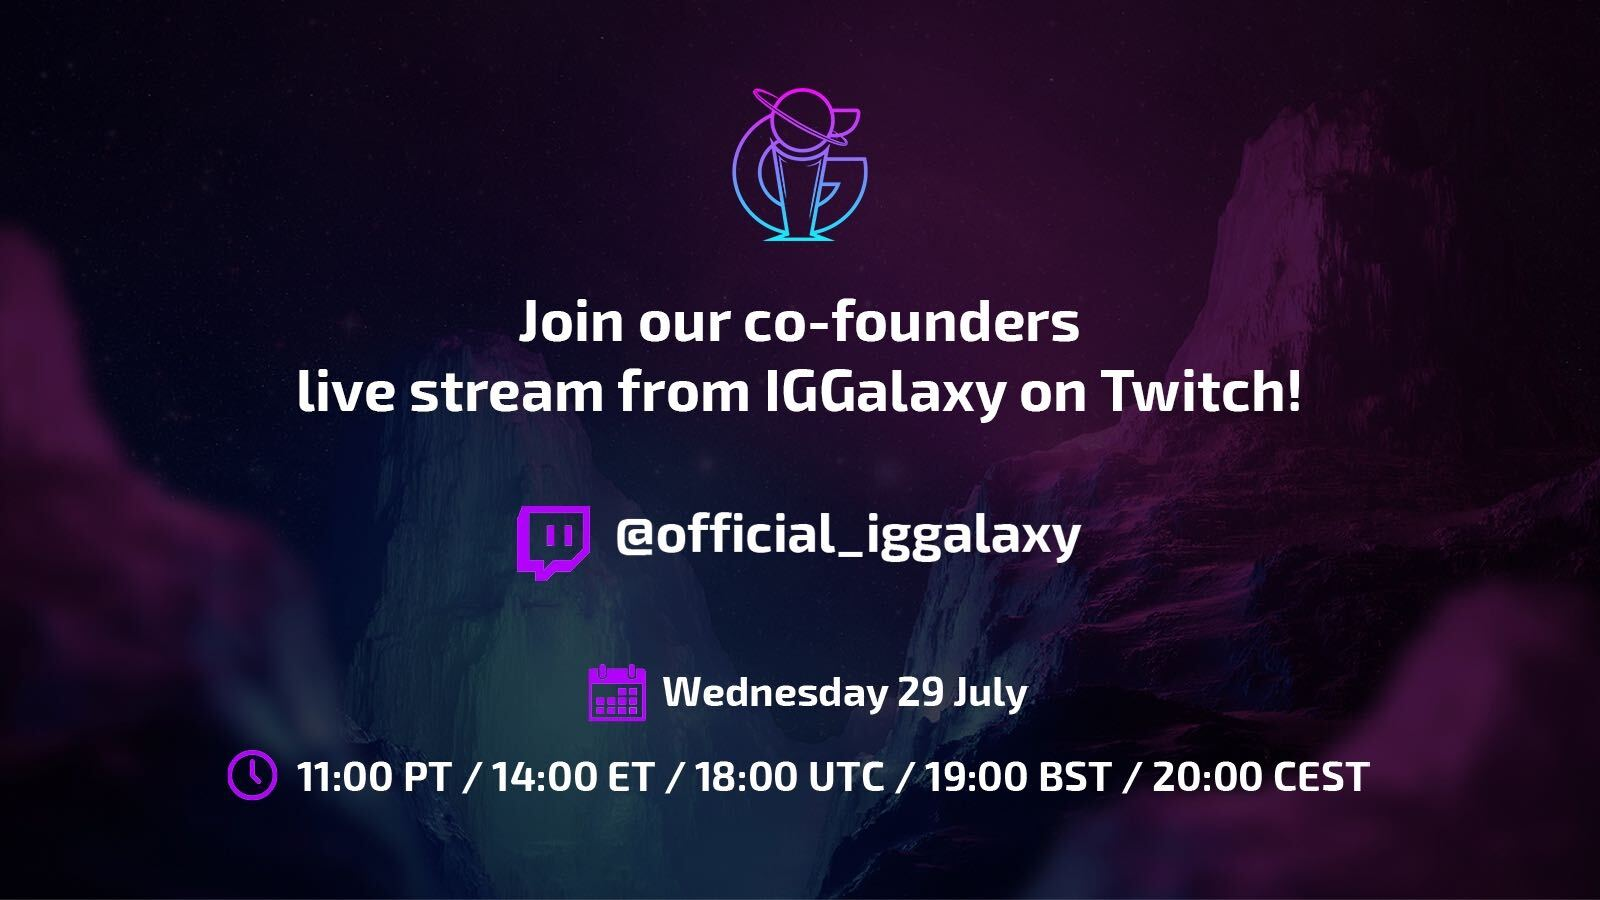 IGGalaxy co-founders to live stream on Twitch!